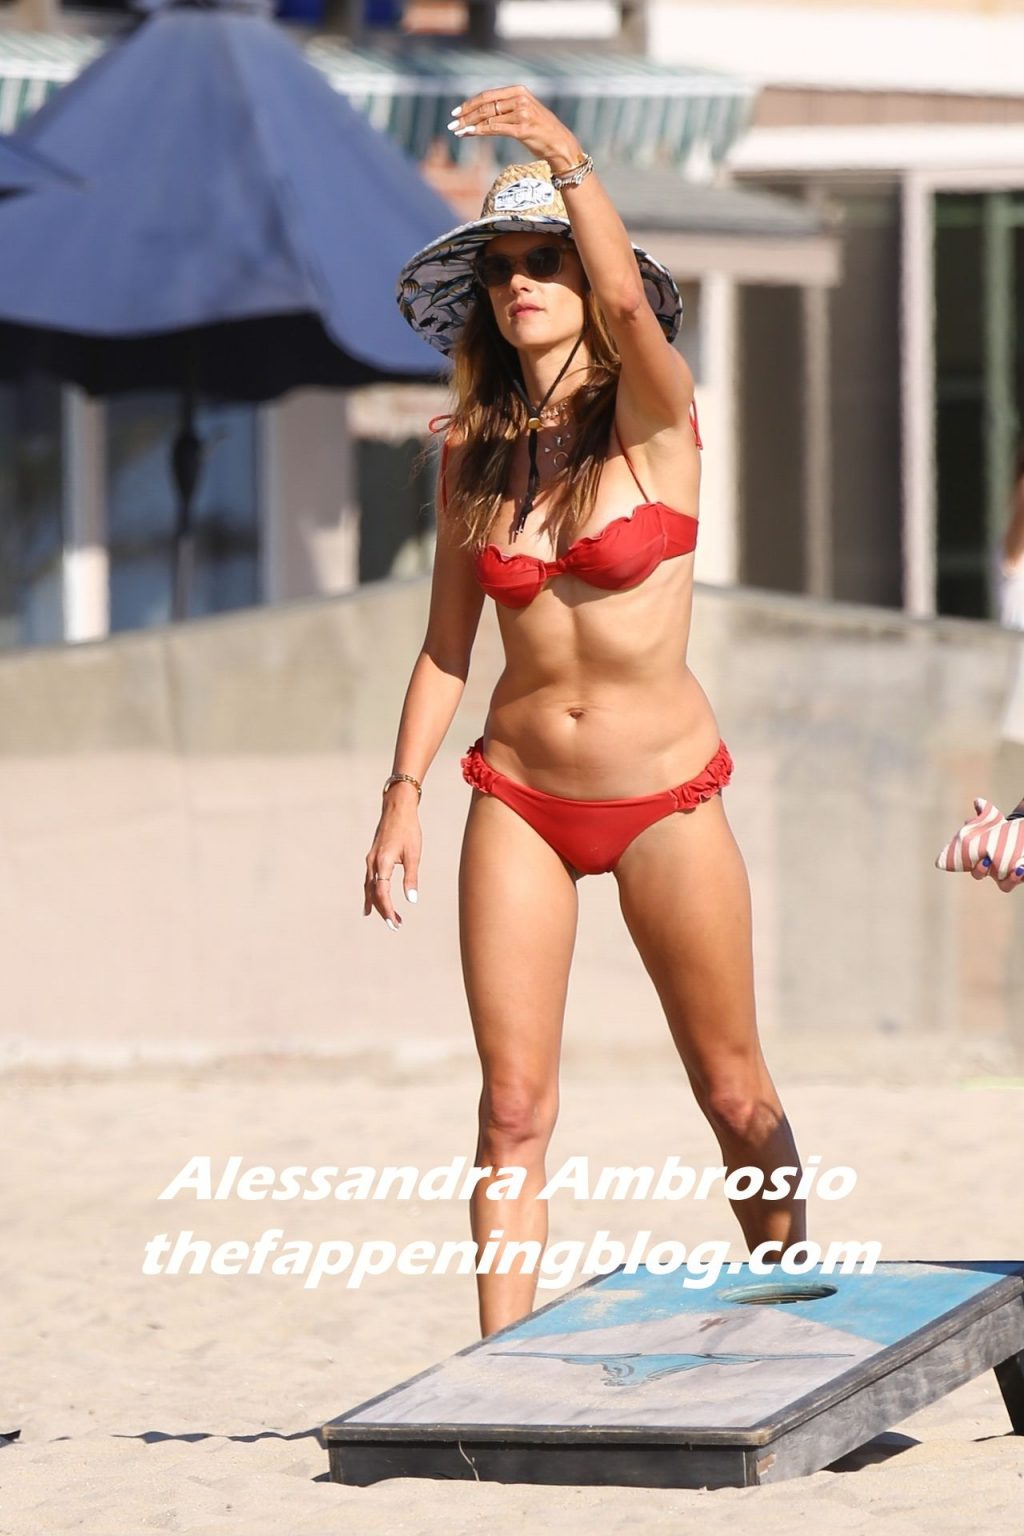 Alessandra Ambrosio Has Fun in the Sun Rocking a Red Bikini (38 Photos)